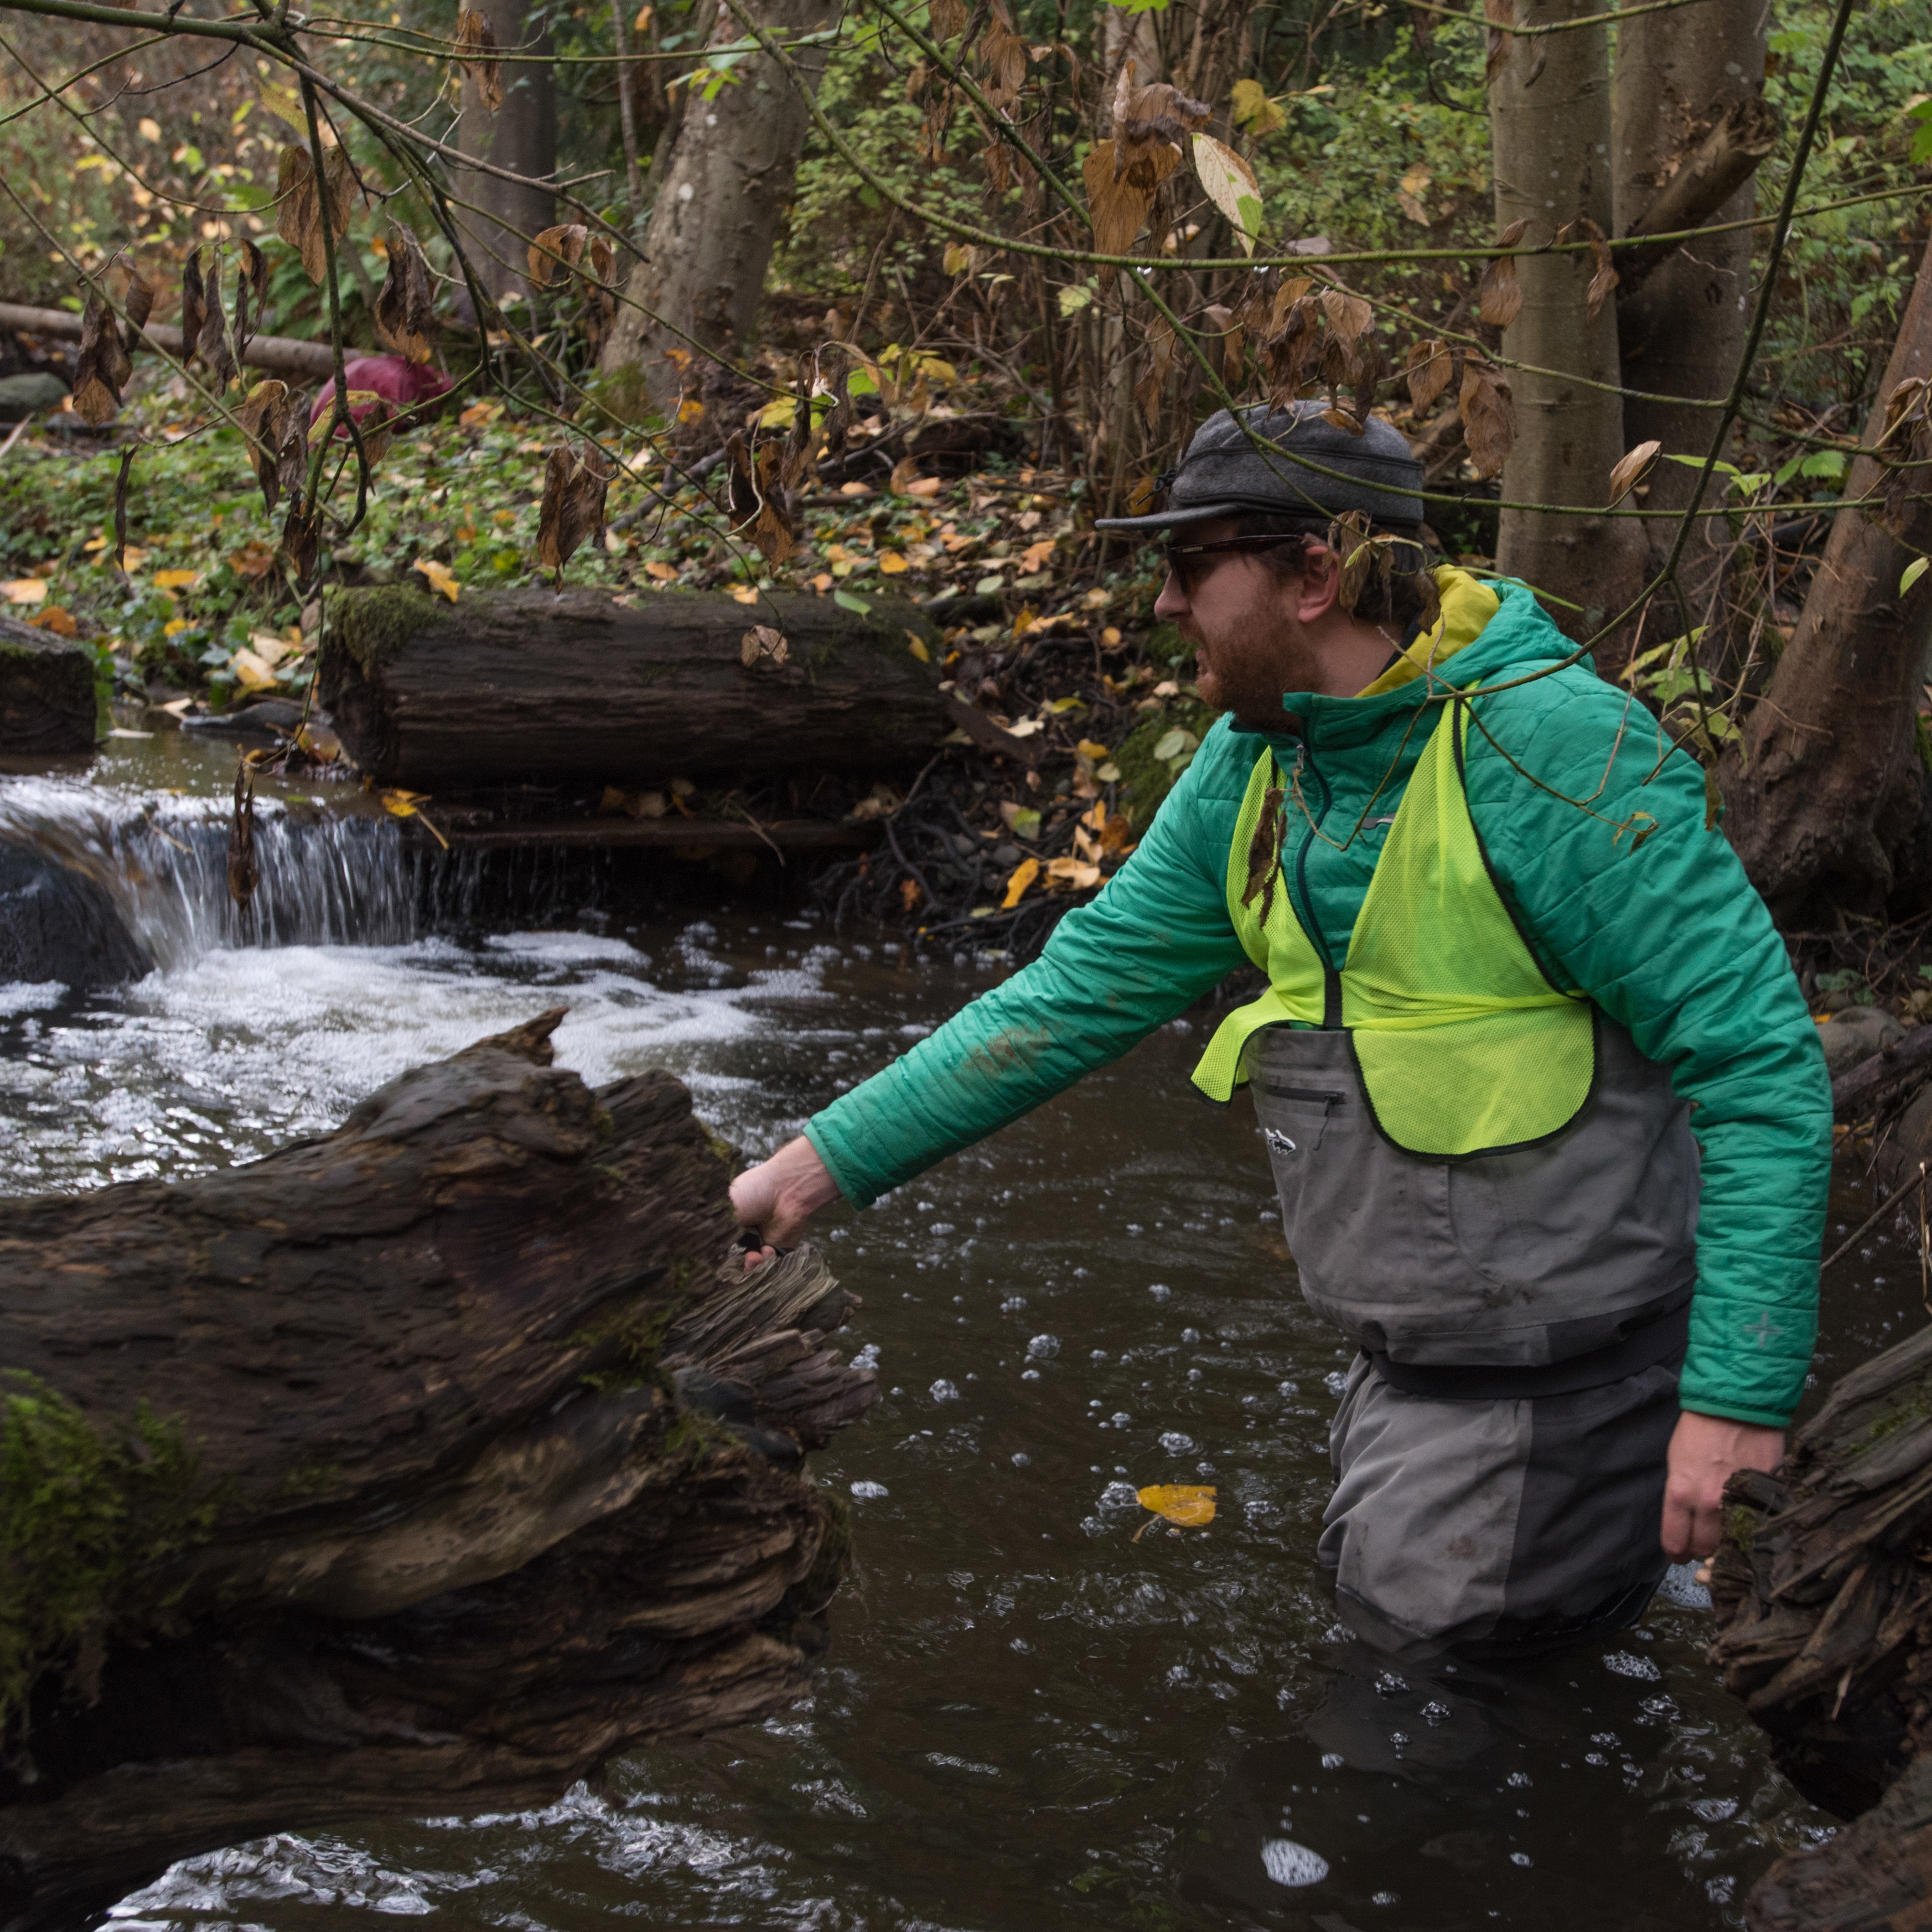 A volunteer in waders looks for salmon in Longfellow Creek.